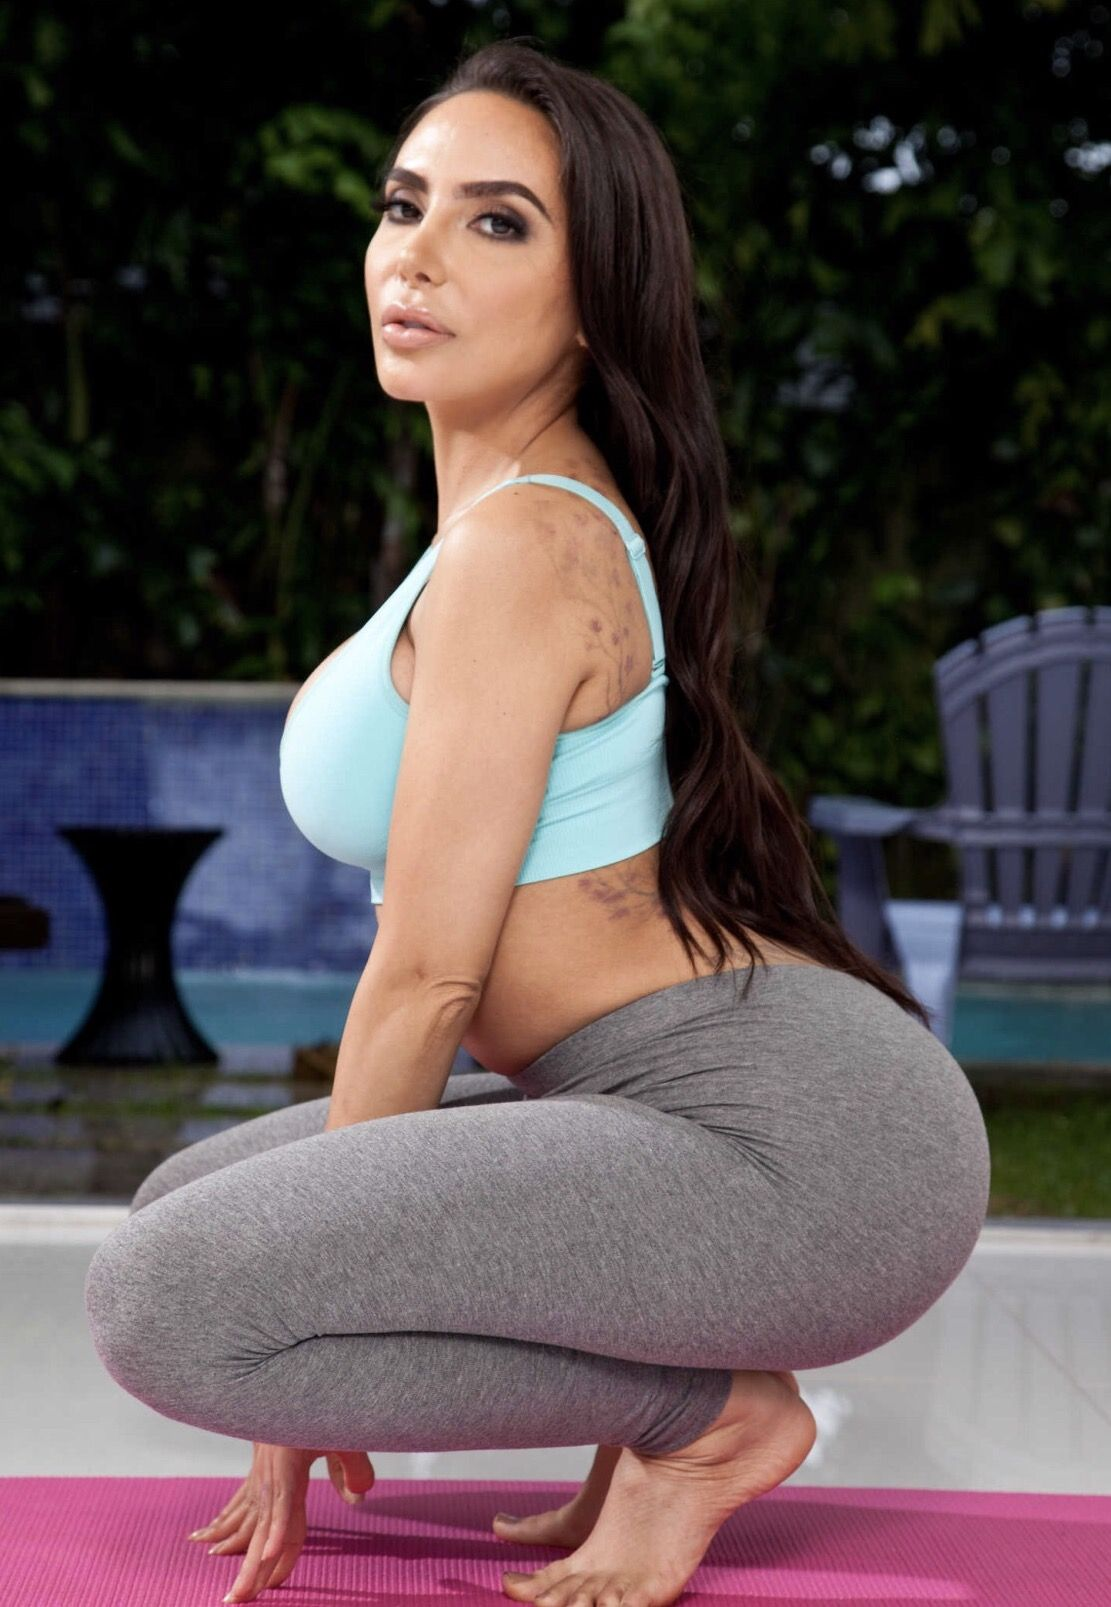 Thick mom pictures